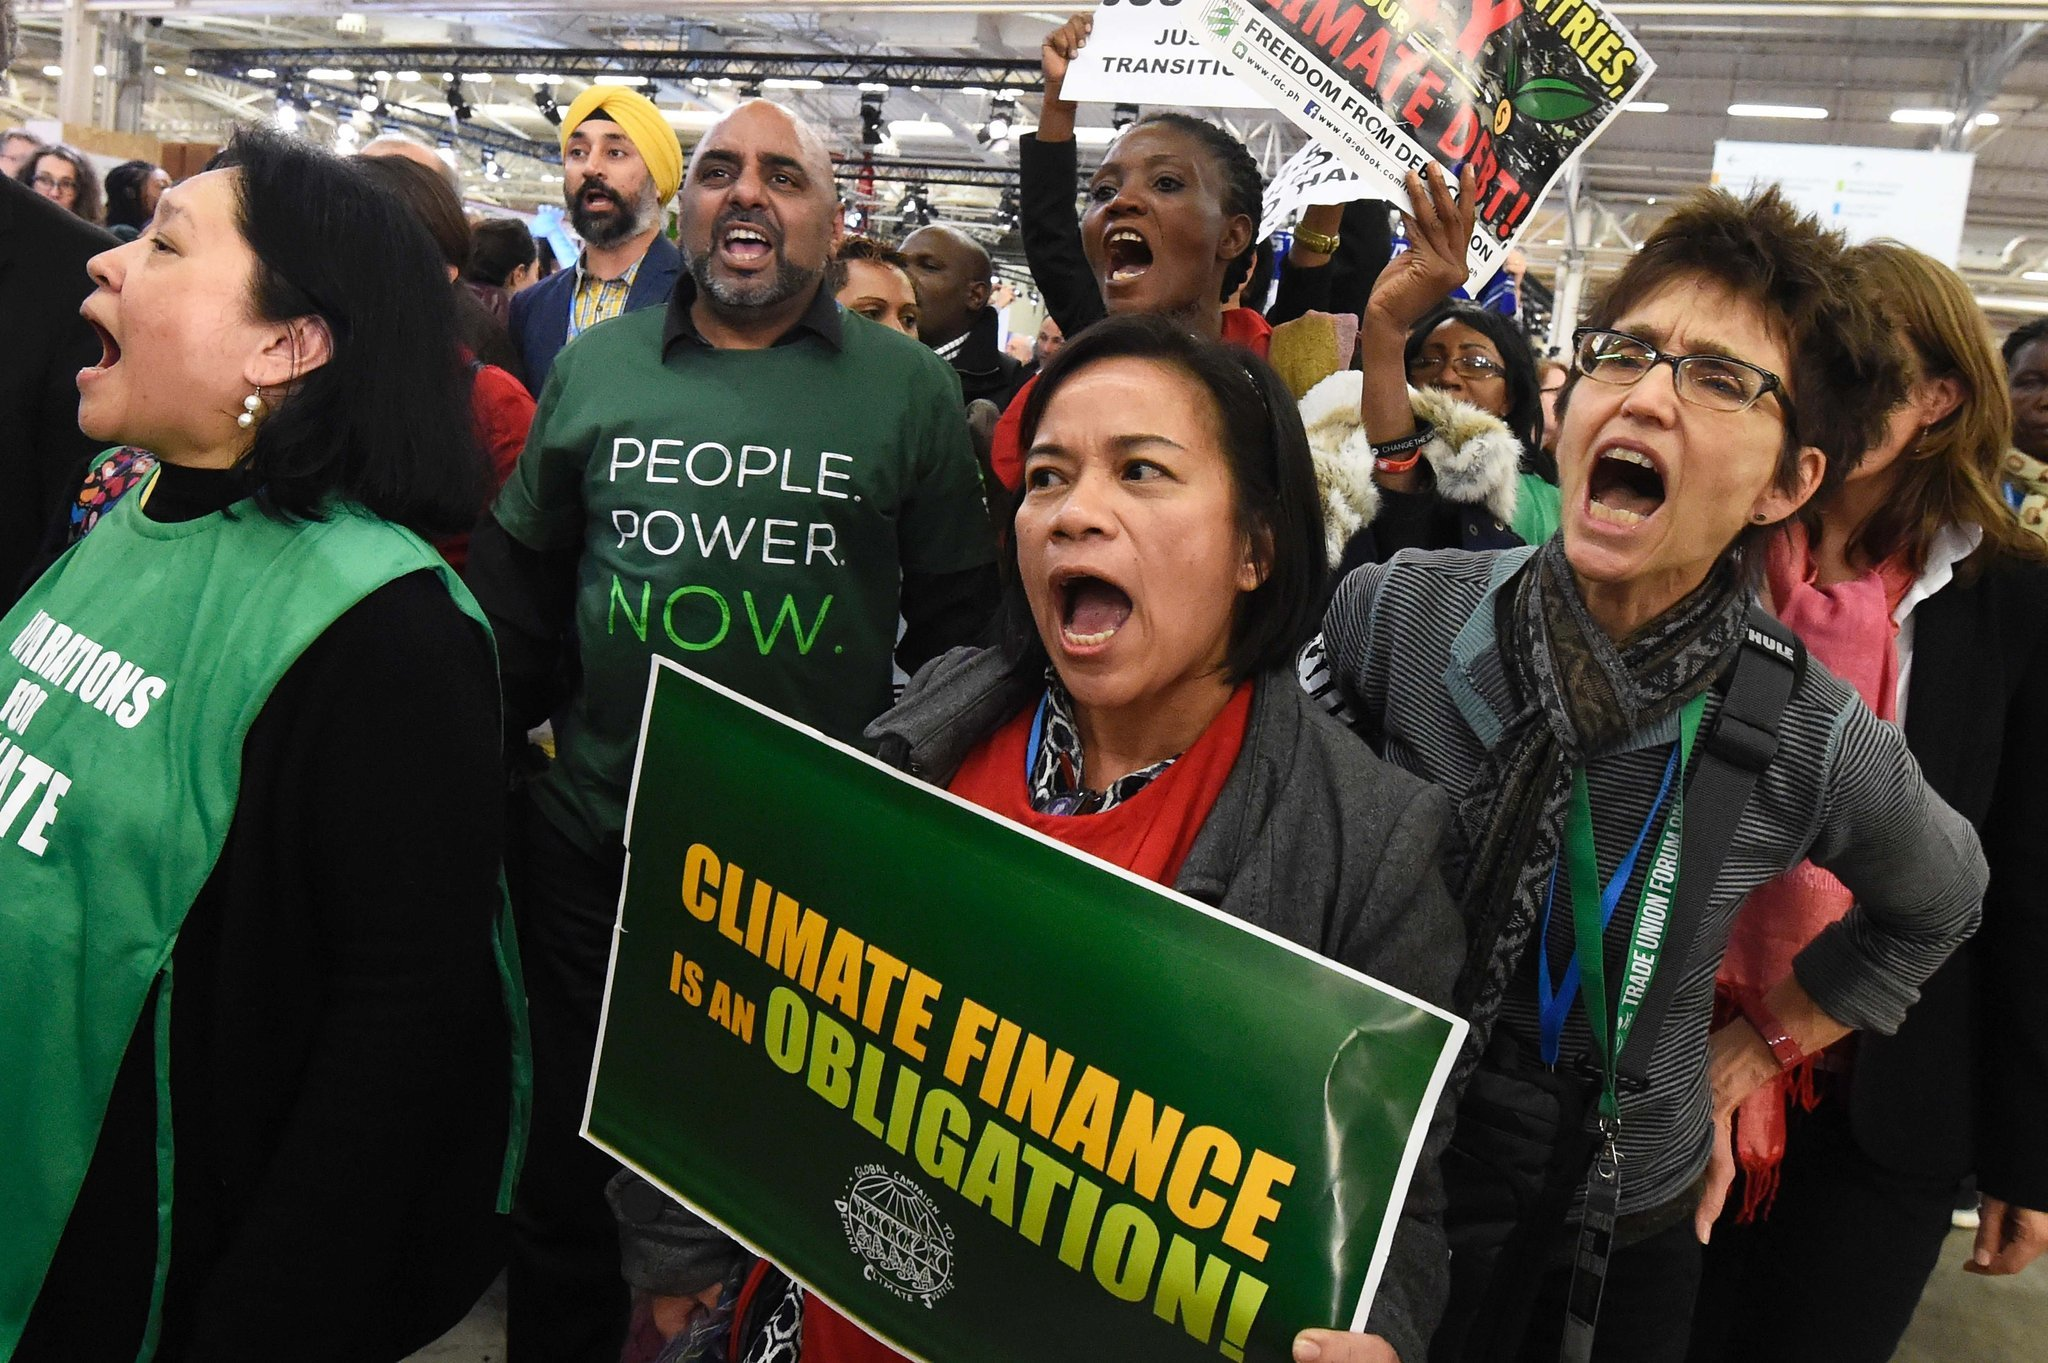 Demonstrators during the United Nations conference on climate change at Le Bourget, on the outskirts of Paris, on Dec. 9, 2015.    (Dominique Faget /AFP/Getty Images)